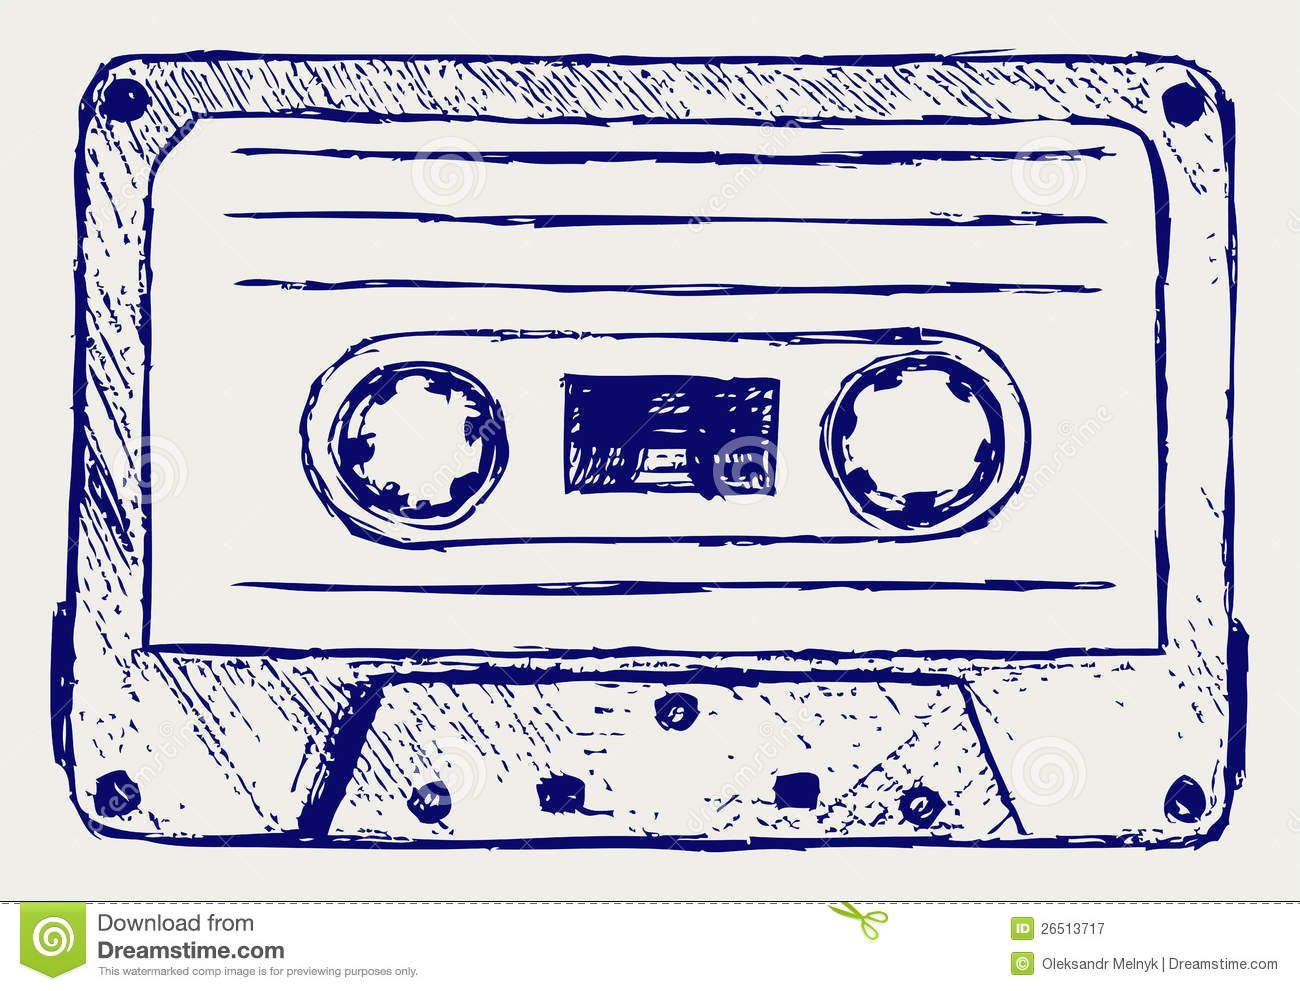 Images For > Cassette Tape Colorful Drawing Dibujos